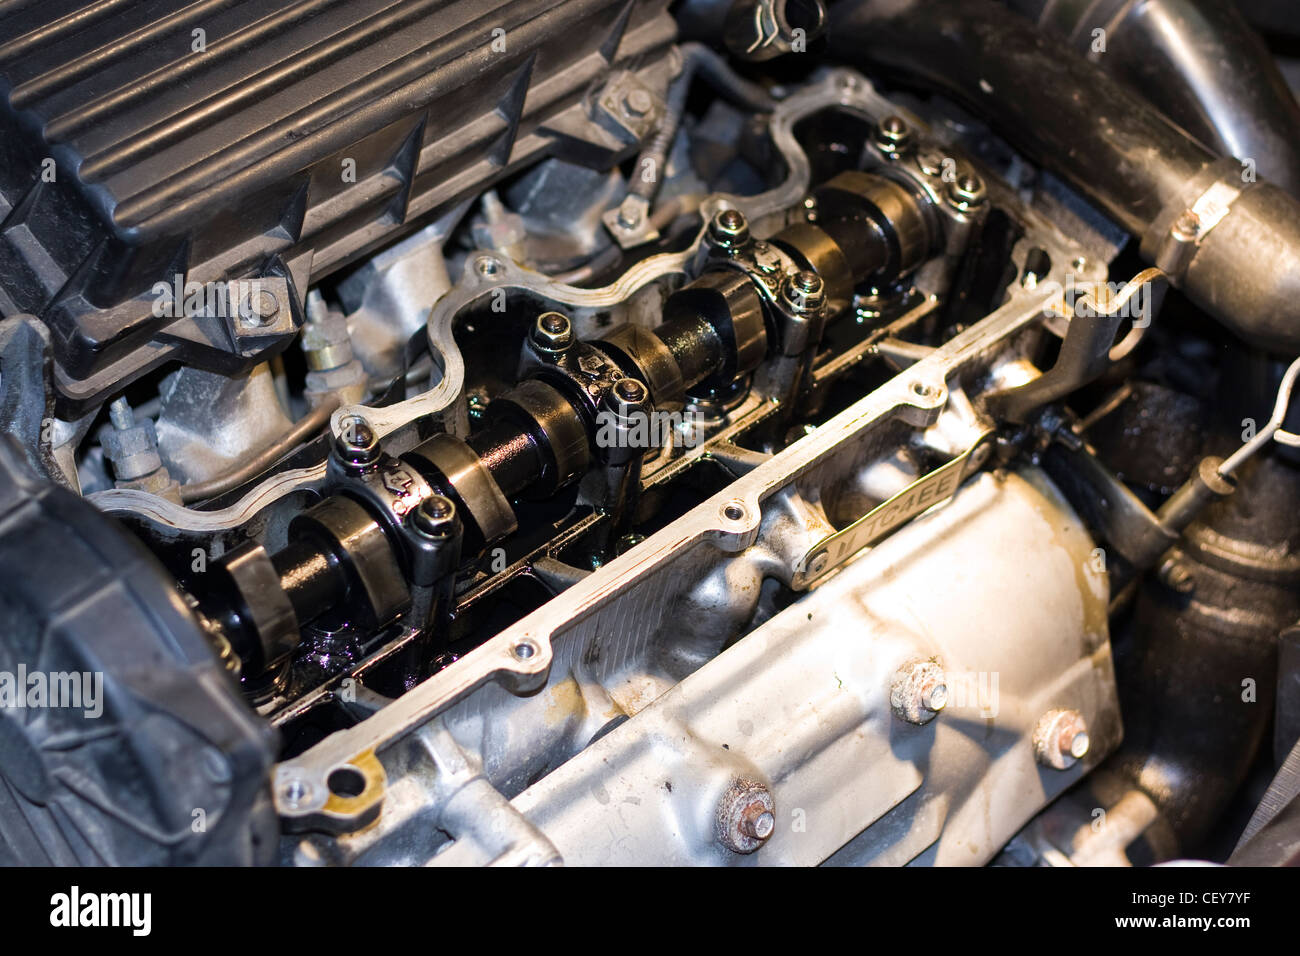 Engine Parts Stock Photos & Engine Parts Stock Images - Alamy